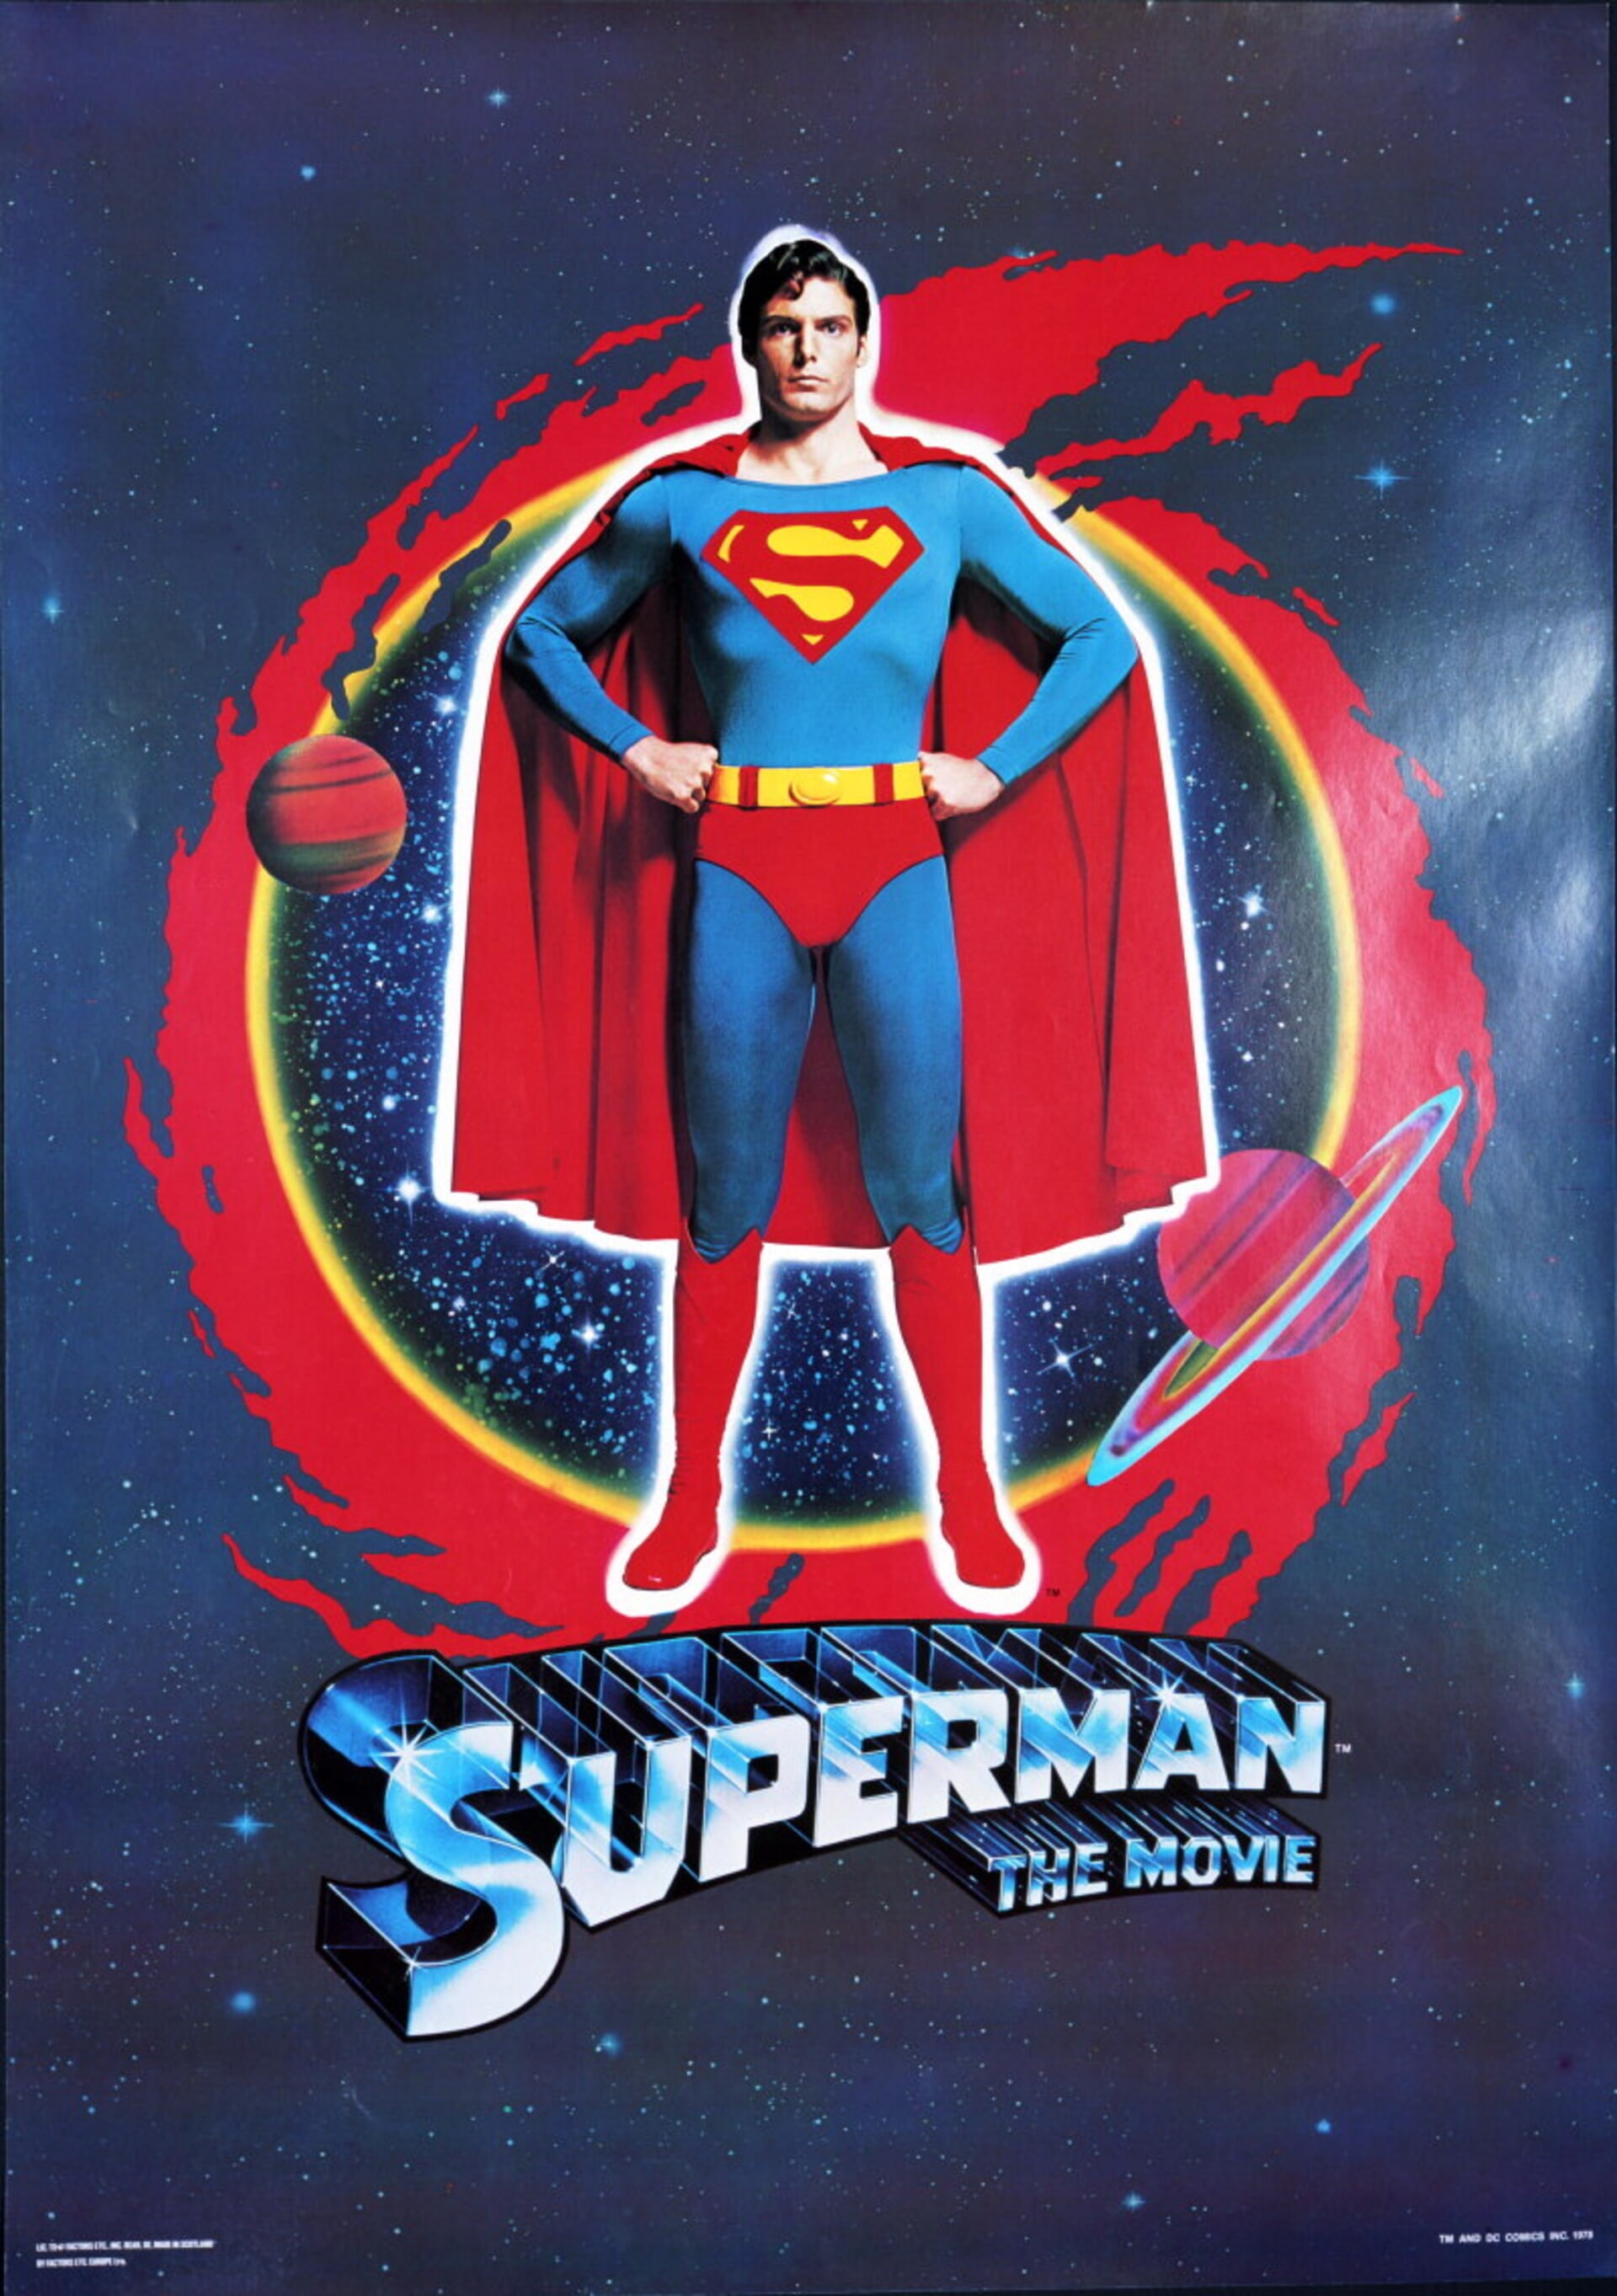 Superman: The Movie - Poster 1